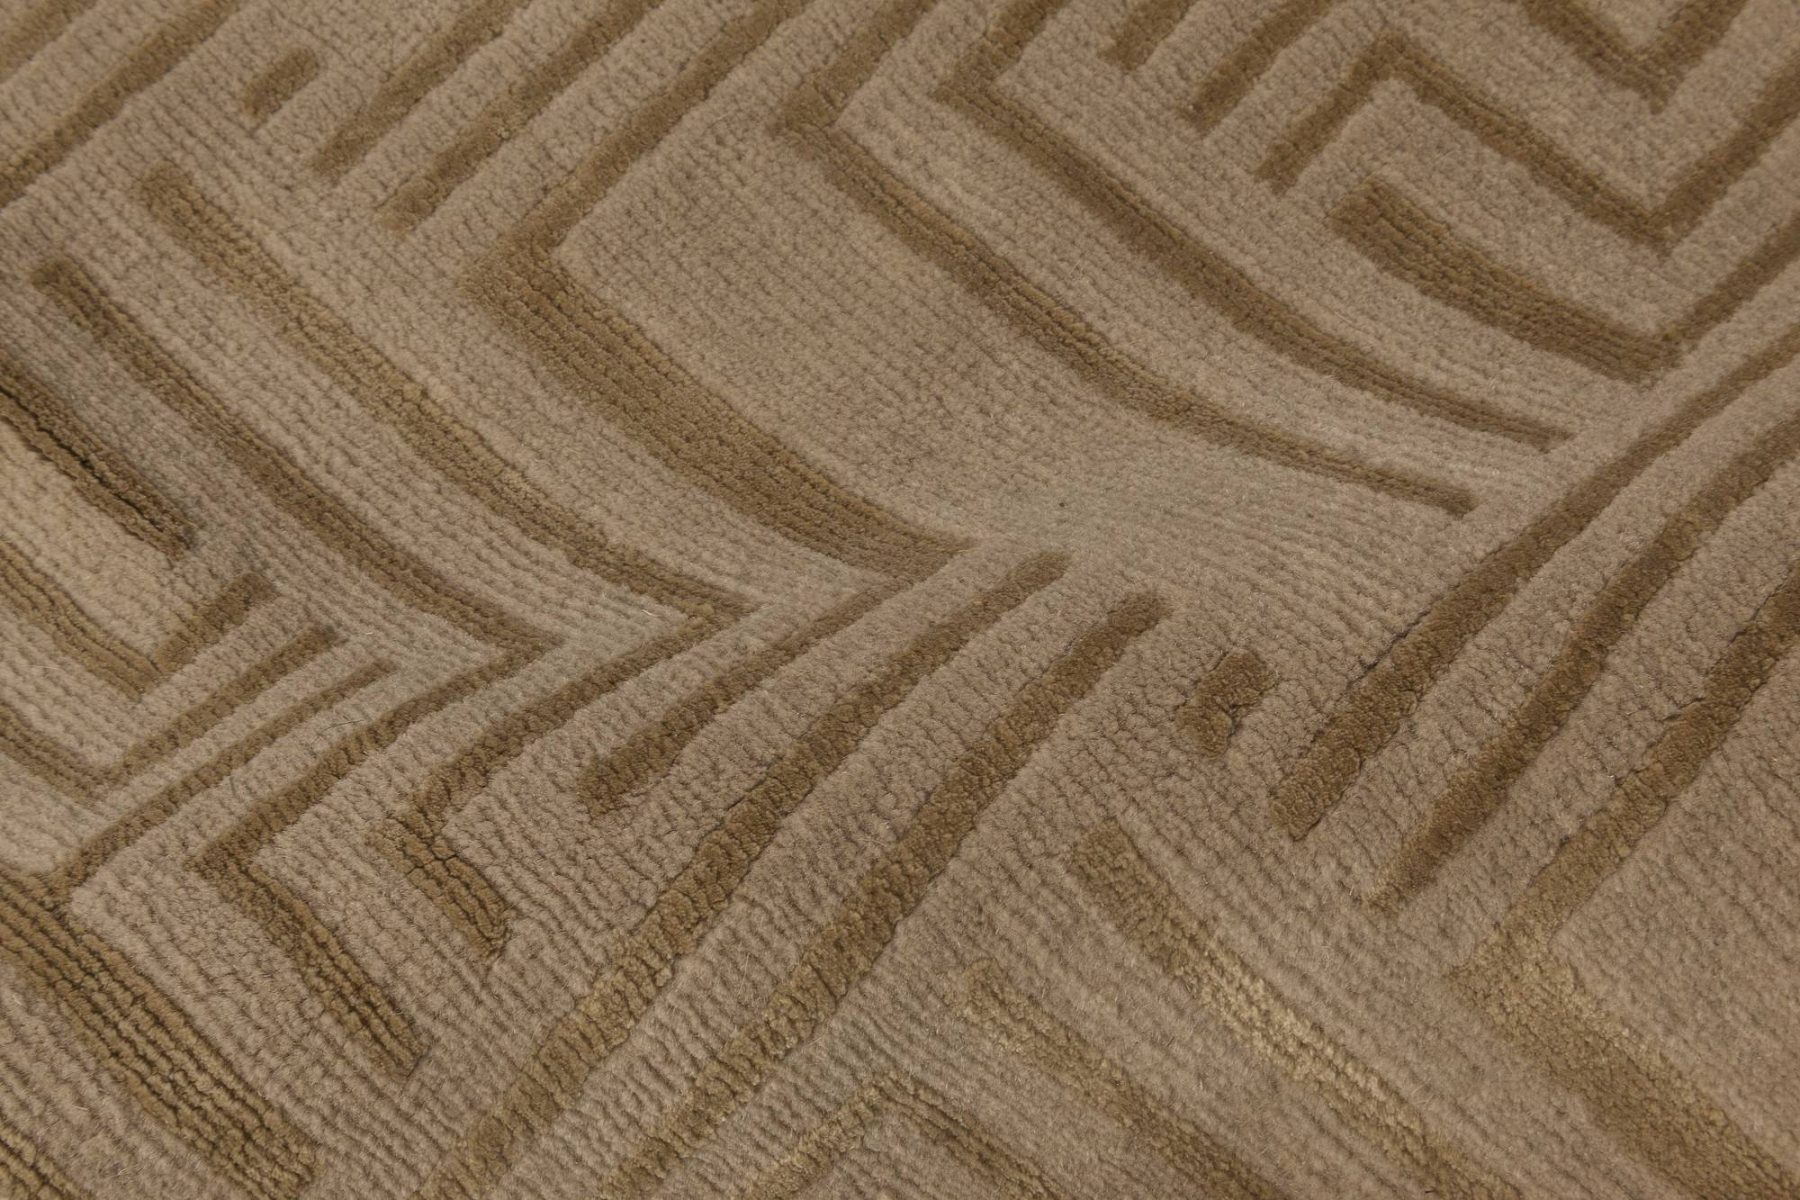 Maze Designed Geometric Carpet N11799